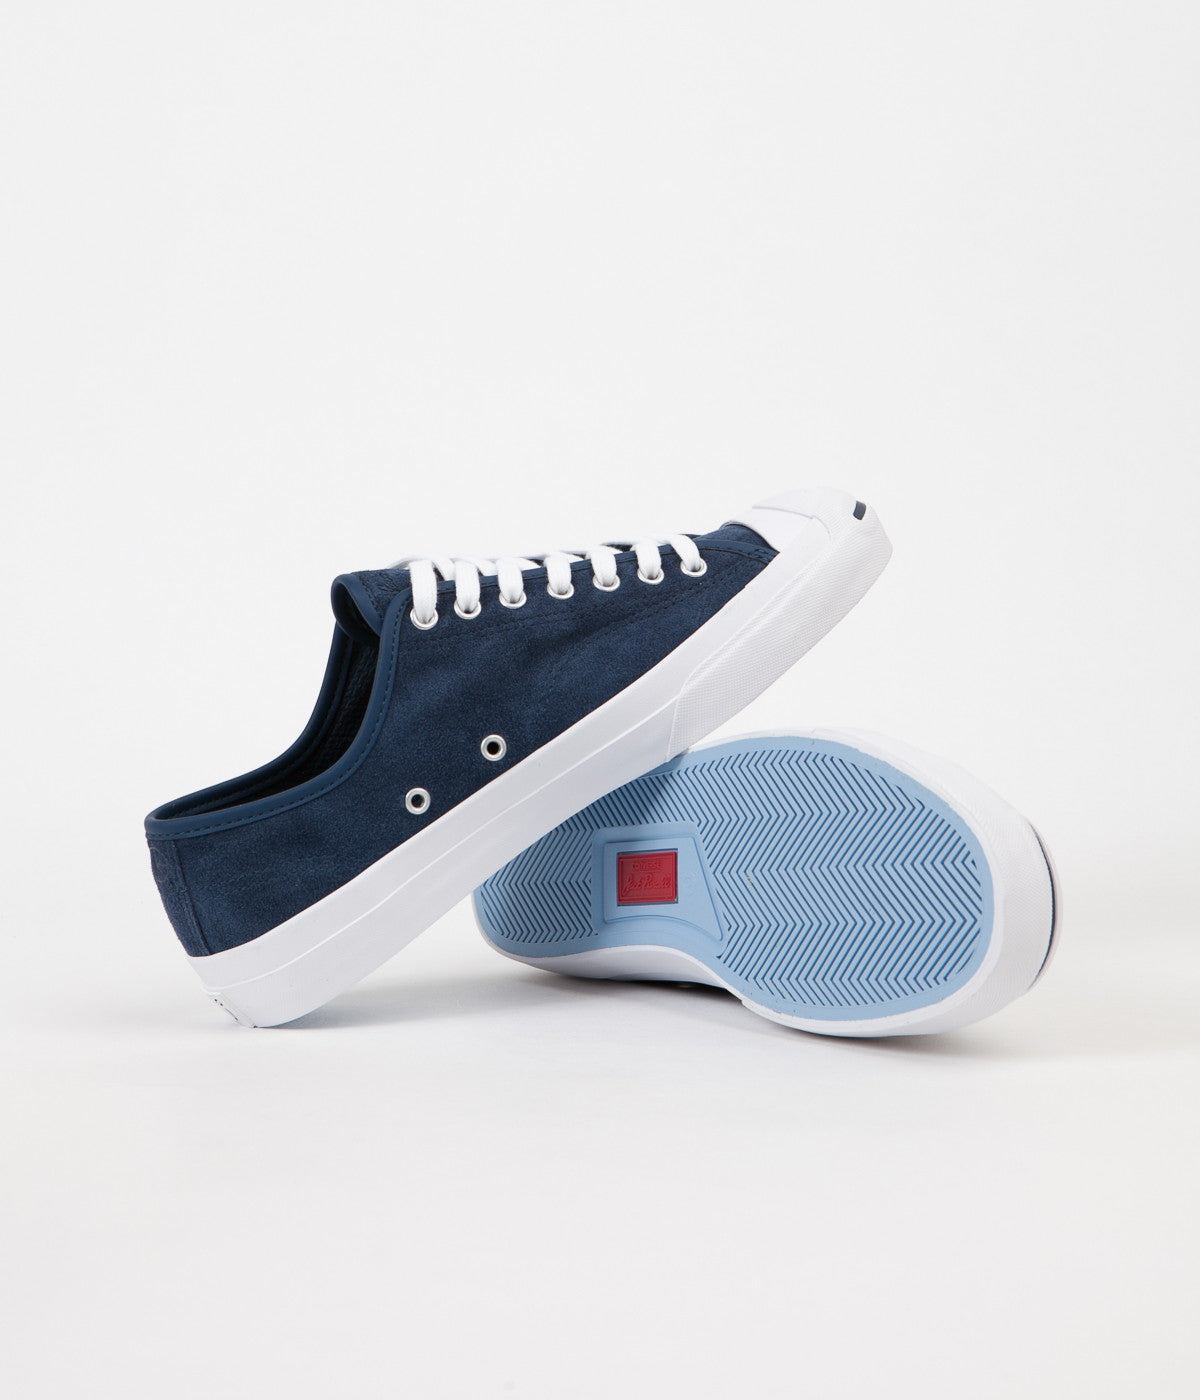 1d83e27799b6 ... Converse x Polar Jack Purcell JP Pro Ox Shoes - Navy   Navy   White ...